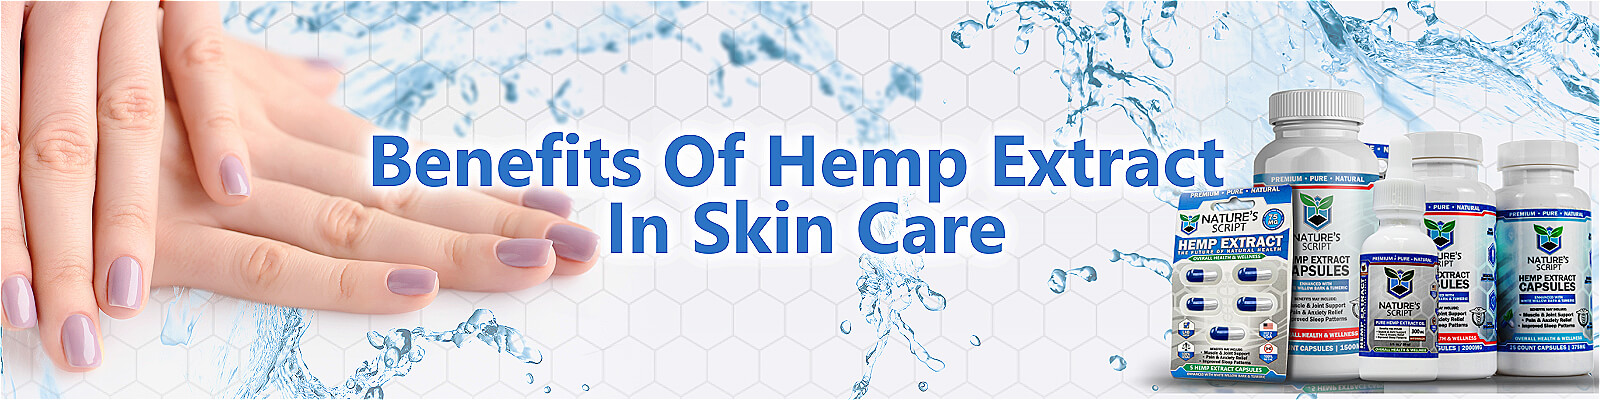 Hemp Extract for skin care woman's hands with natures script products